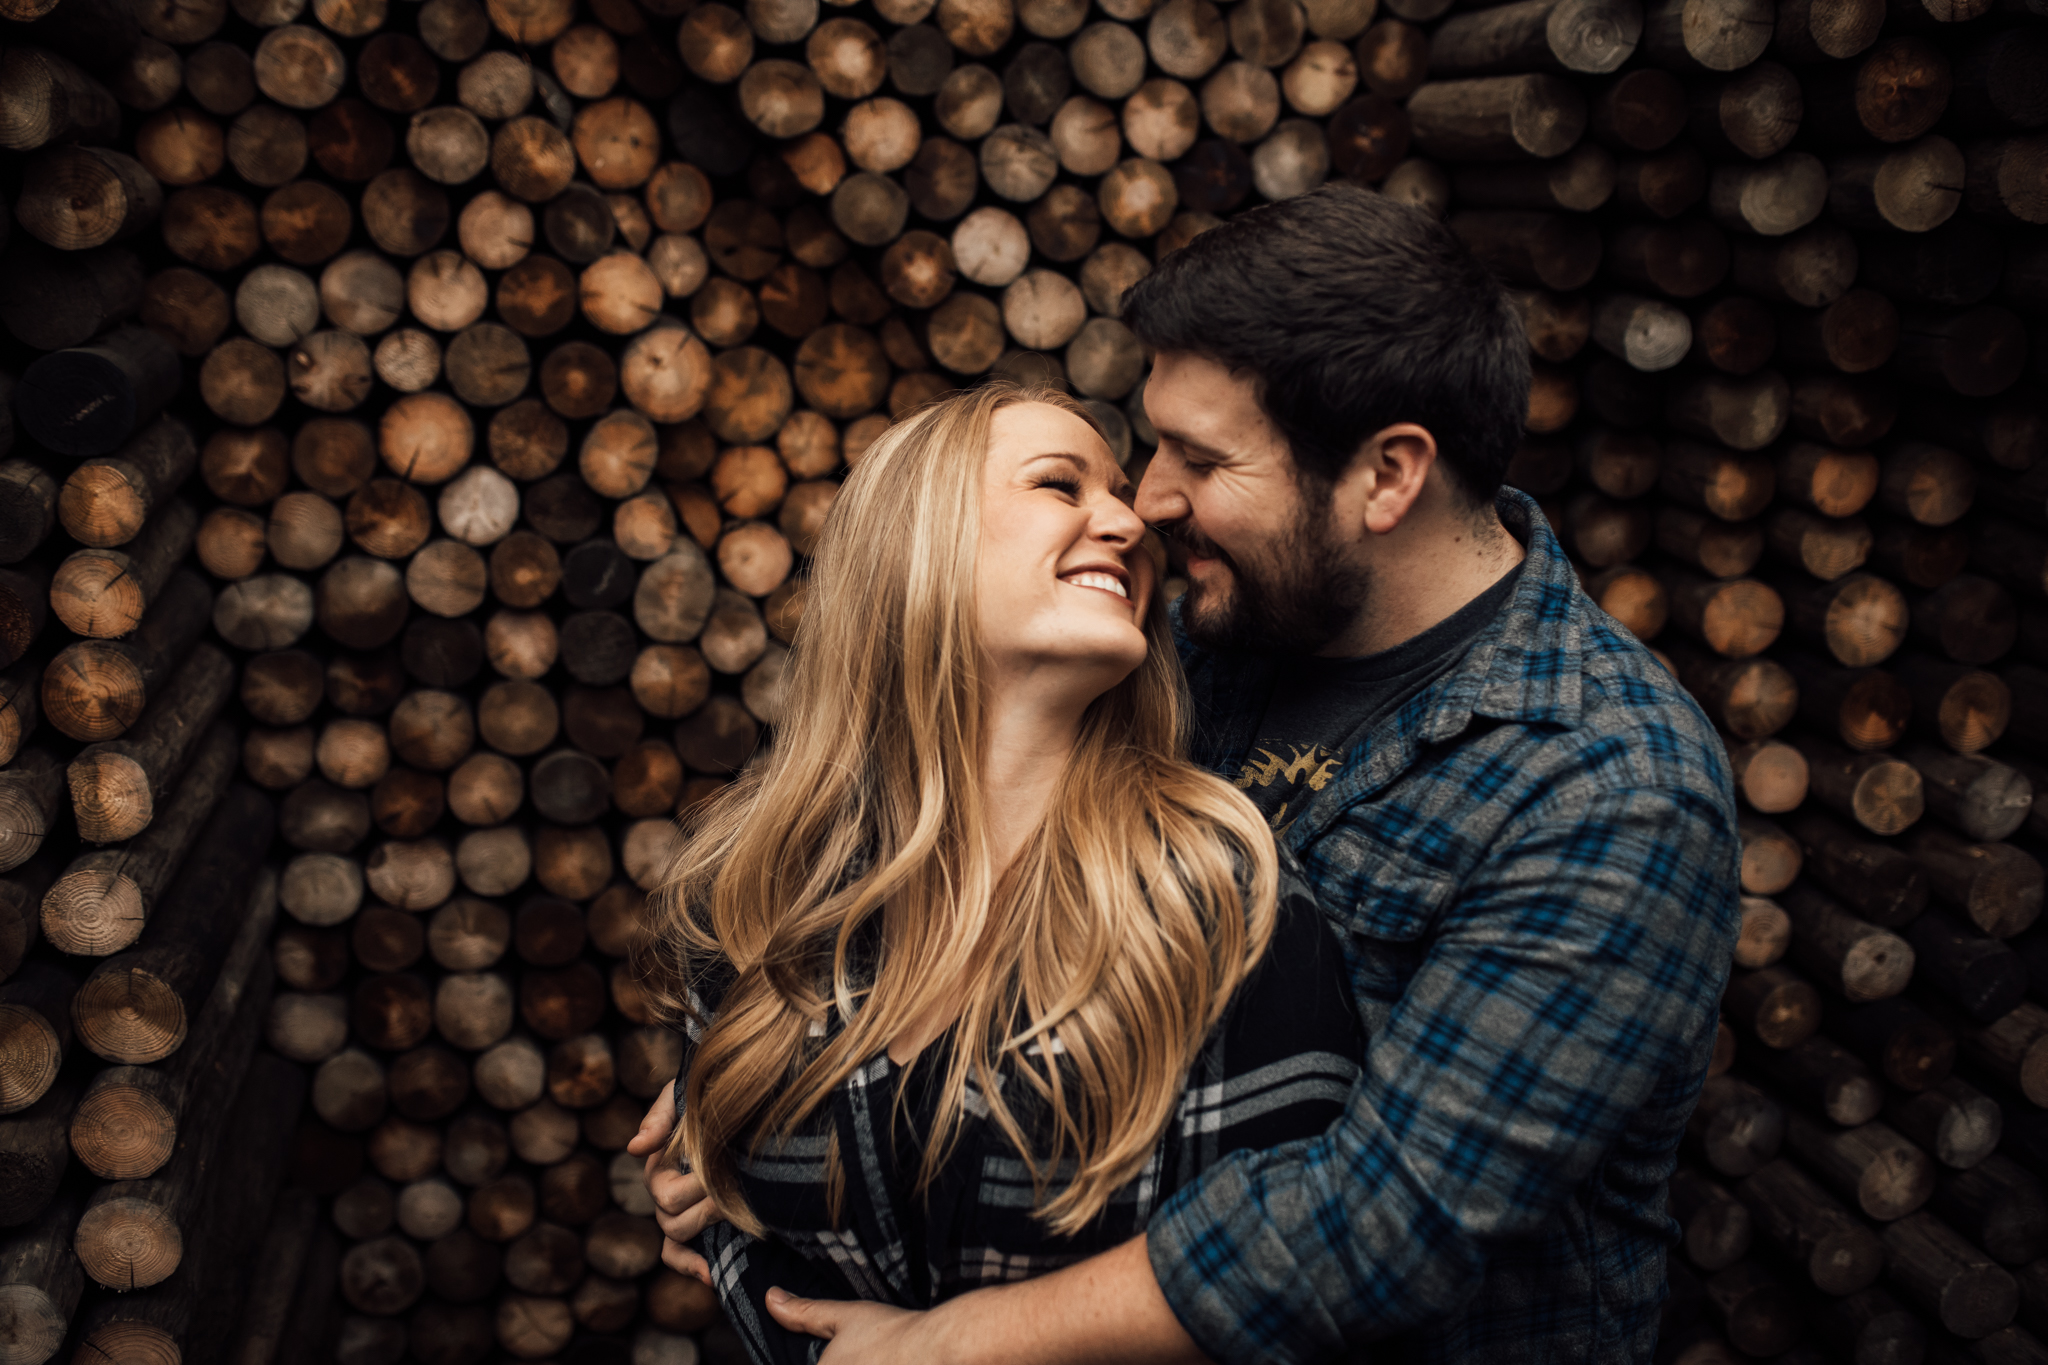 wiseacre-brewing-wedding-photographer-the-warmth-around-you-cassie-cook-photography (24 of 64).jpg